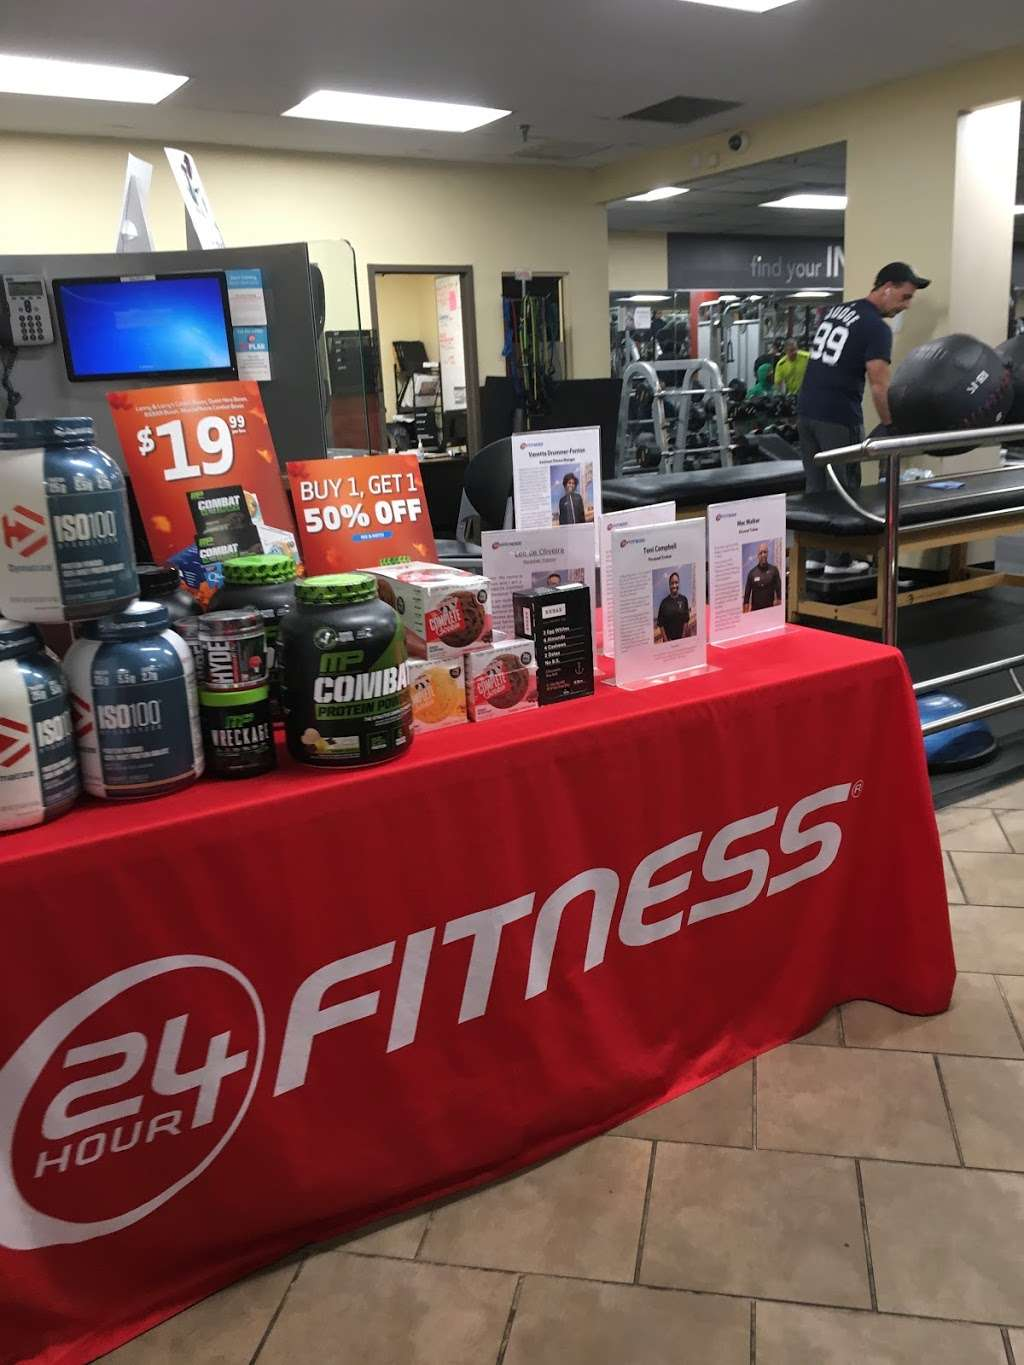 24 Hour Fitness - gym  | Photo 6 of 10 | Address: 589 Tuckahoe Rd, Yonkers, NY 10710, USA | Phone: (914) 793-3100